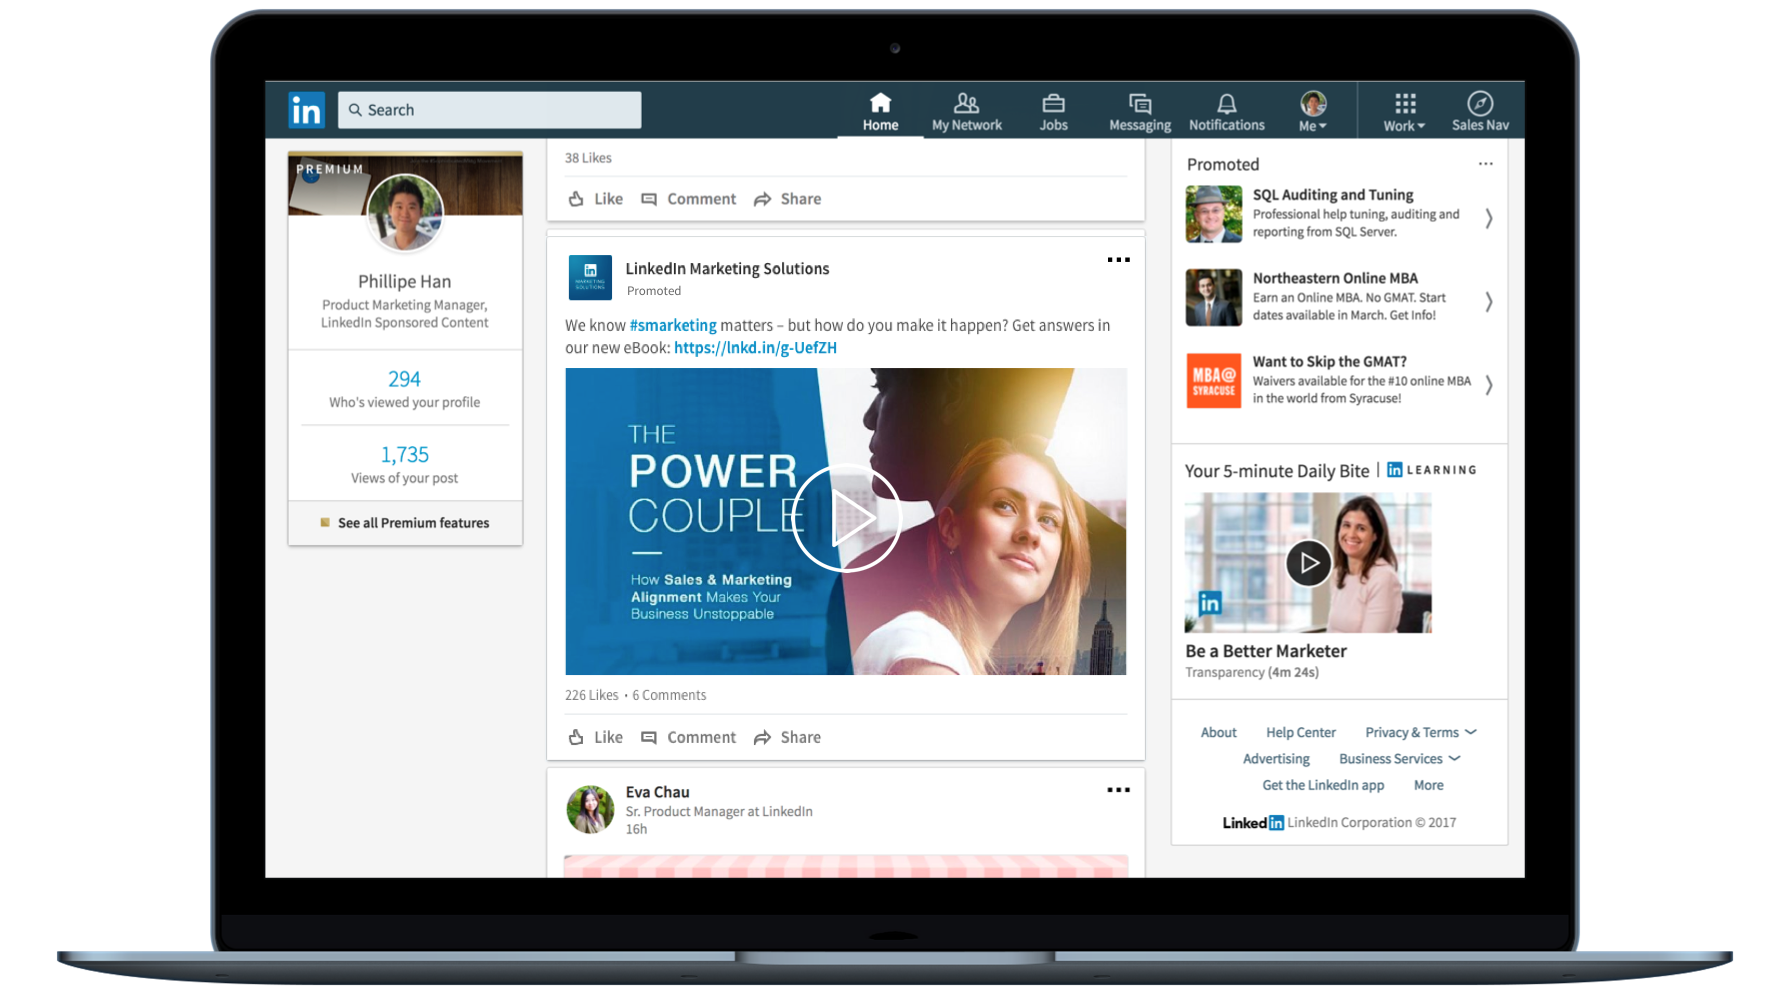 LinkedIn Launches beta program with Video for Sponsored